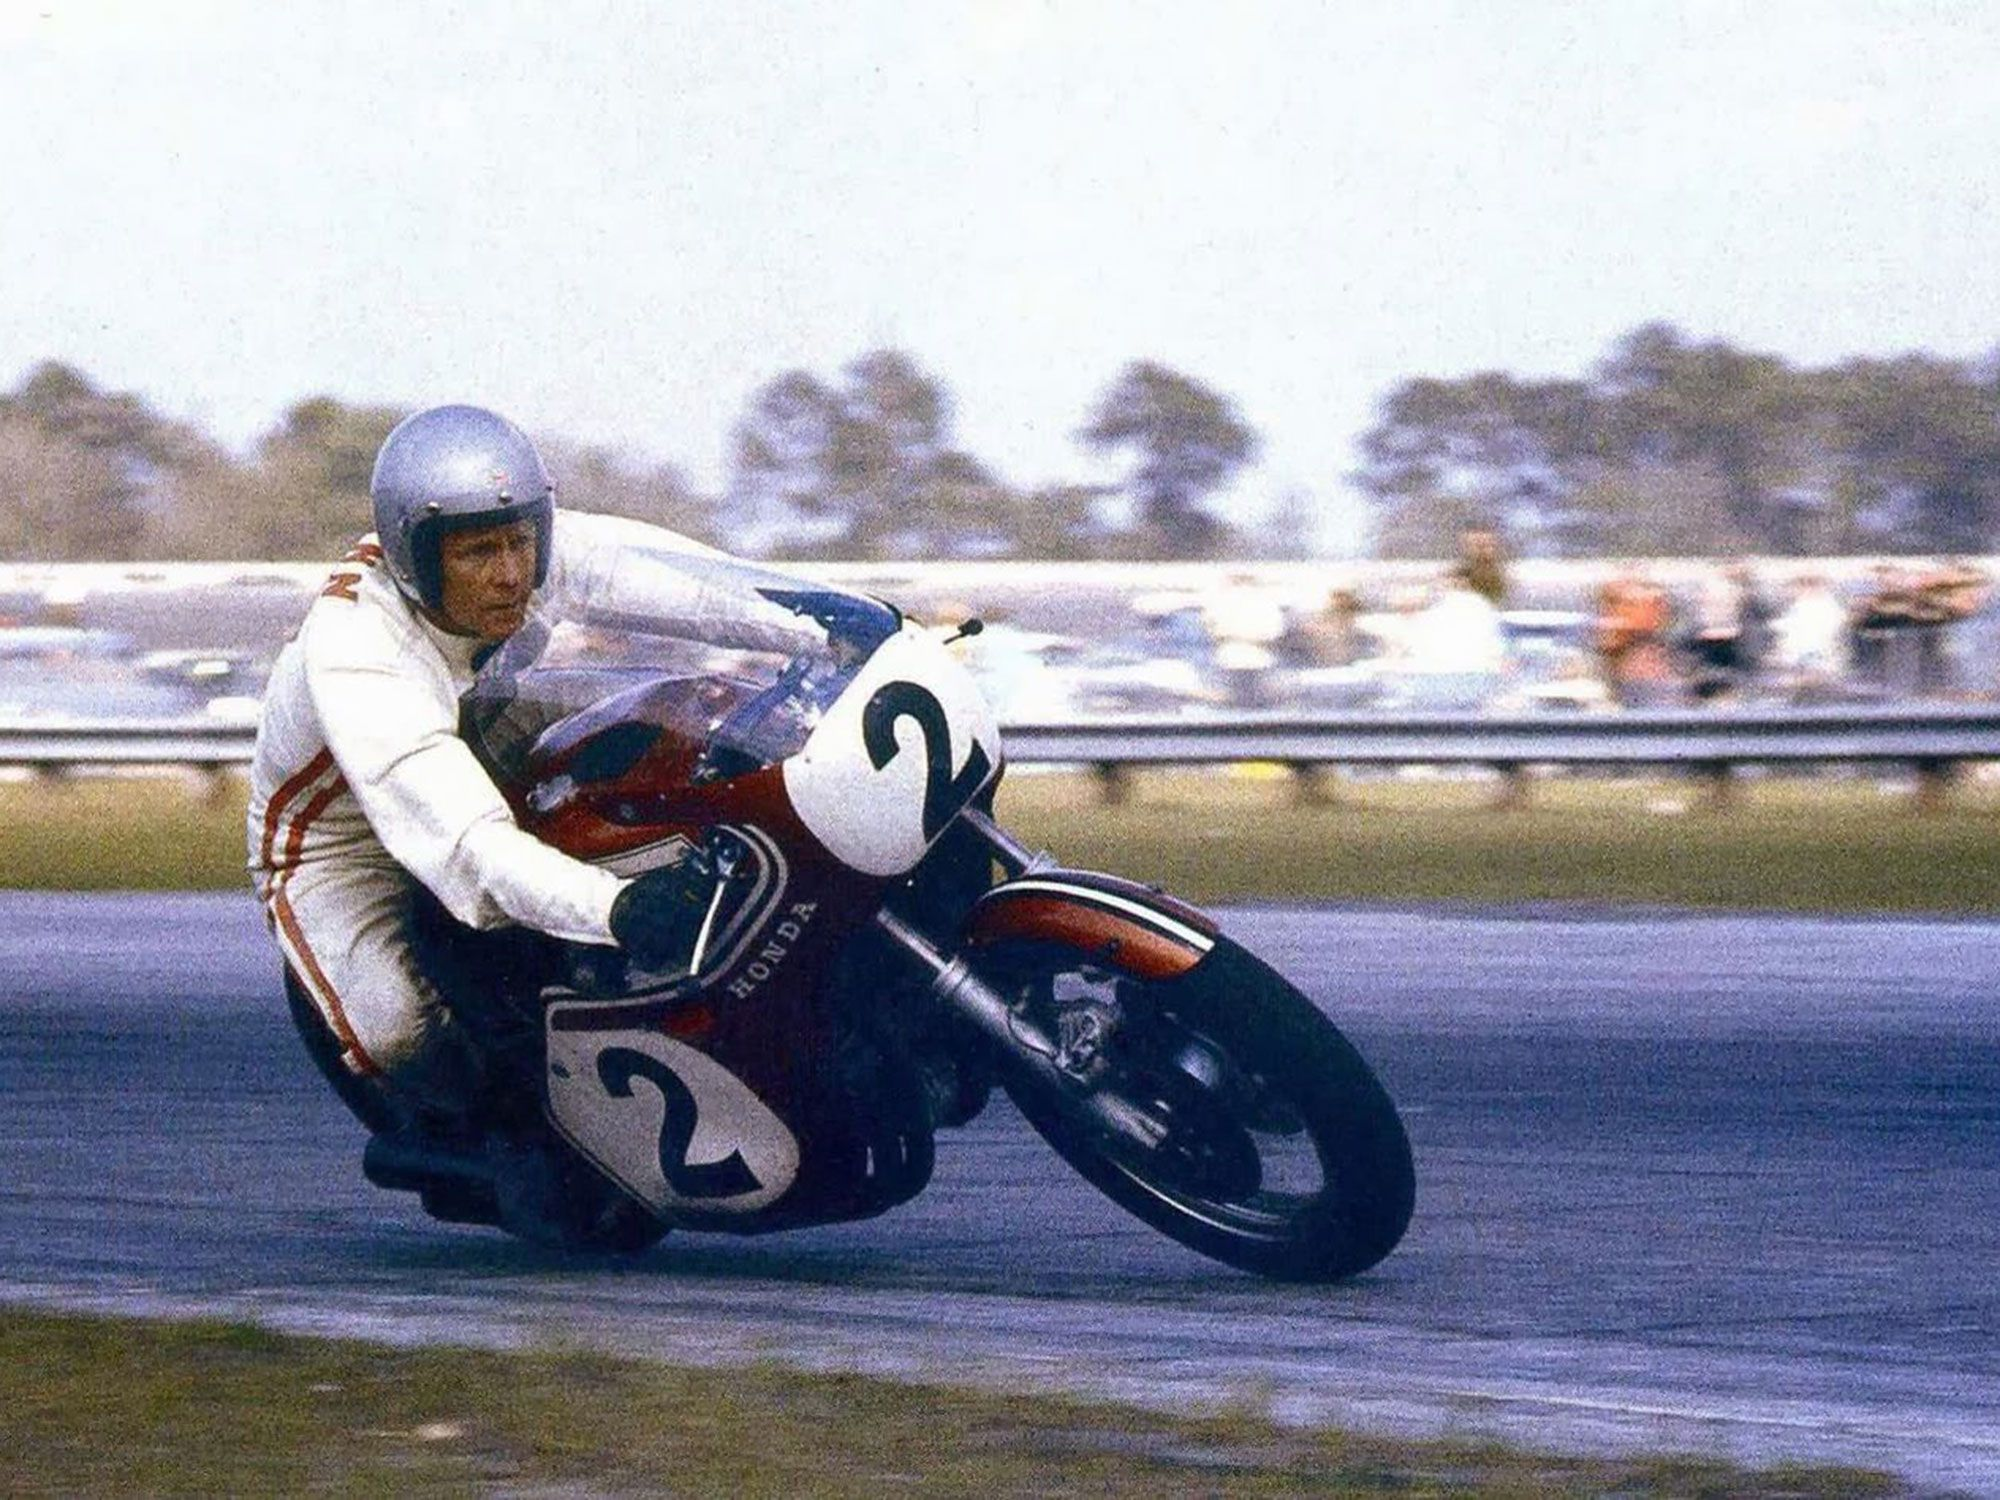 Dick Mann smartly rode his Honda CB750 inline-four to the 1970 Daytona 200 win.